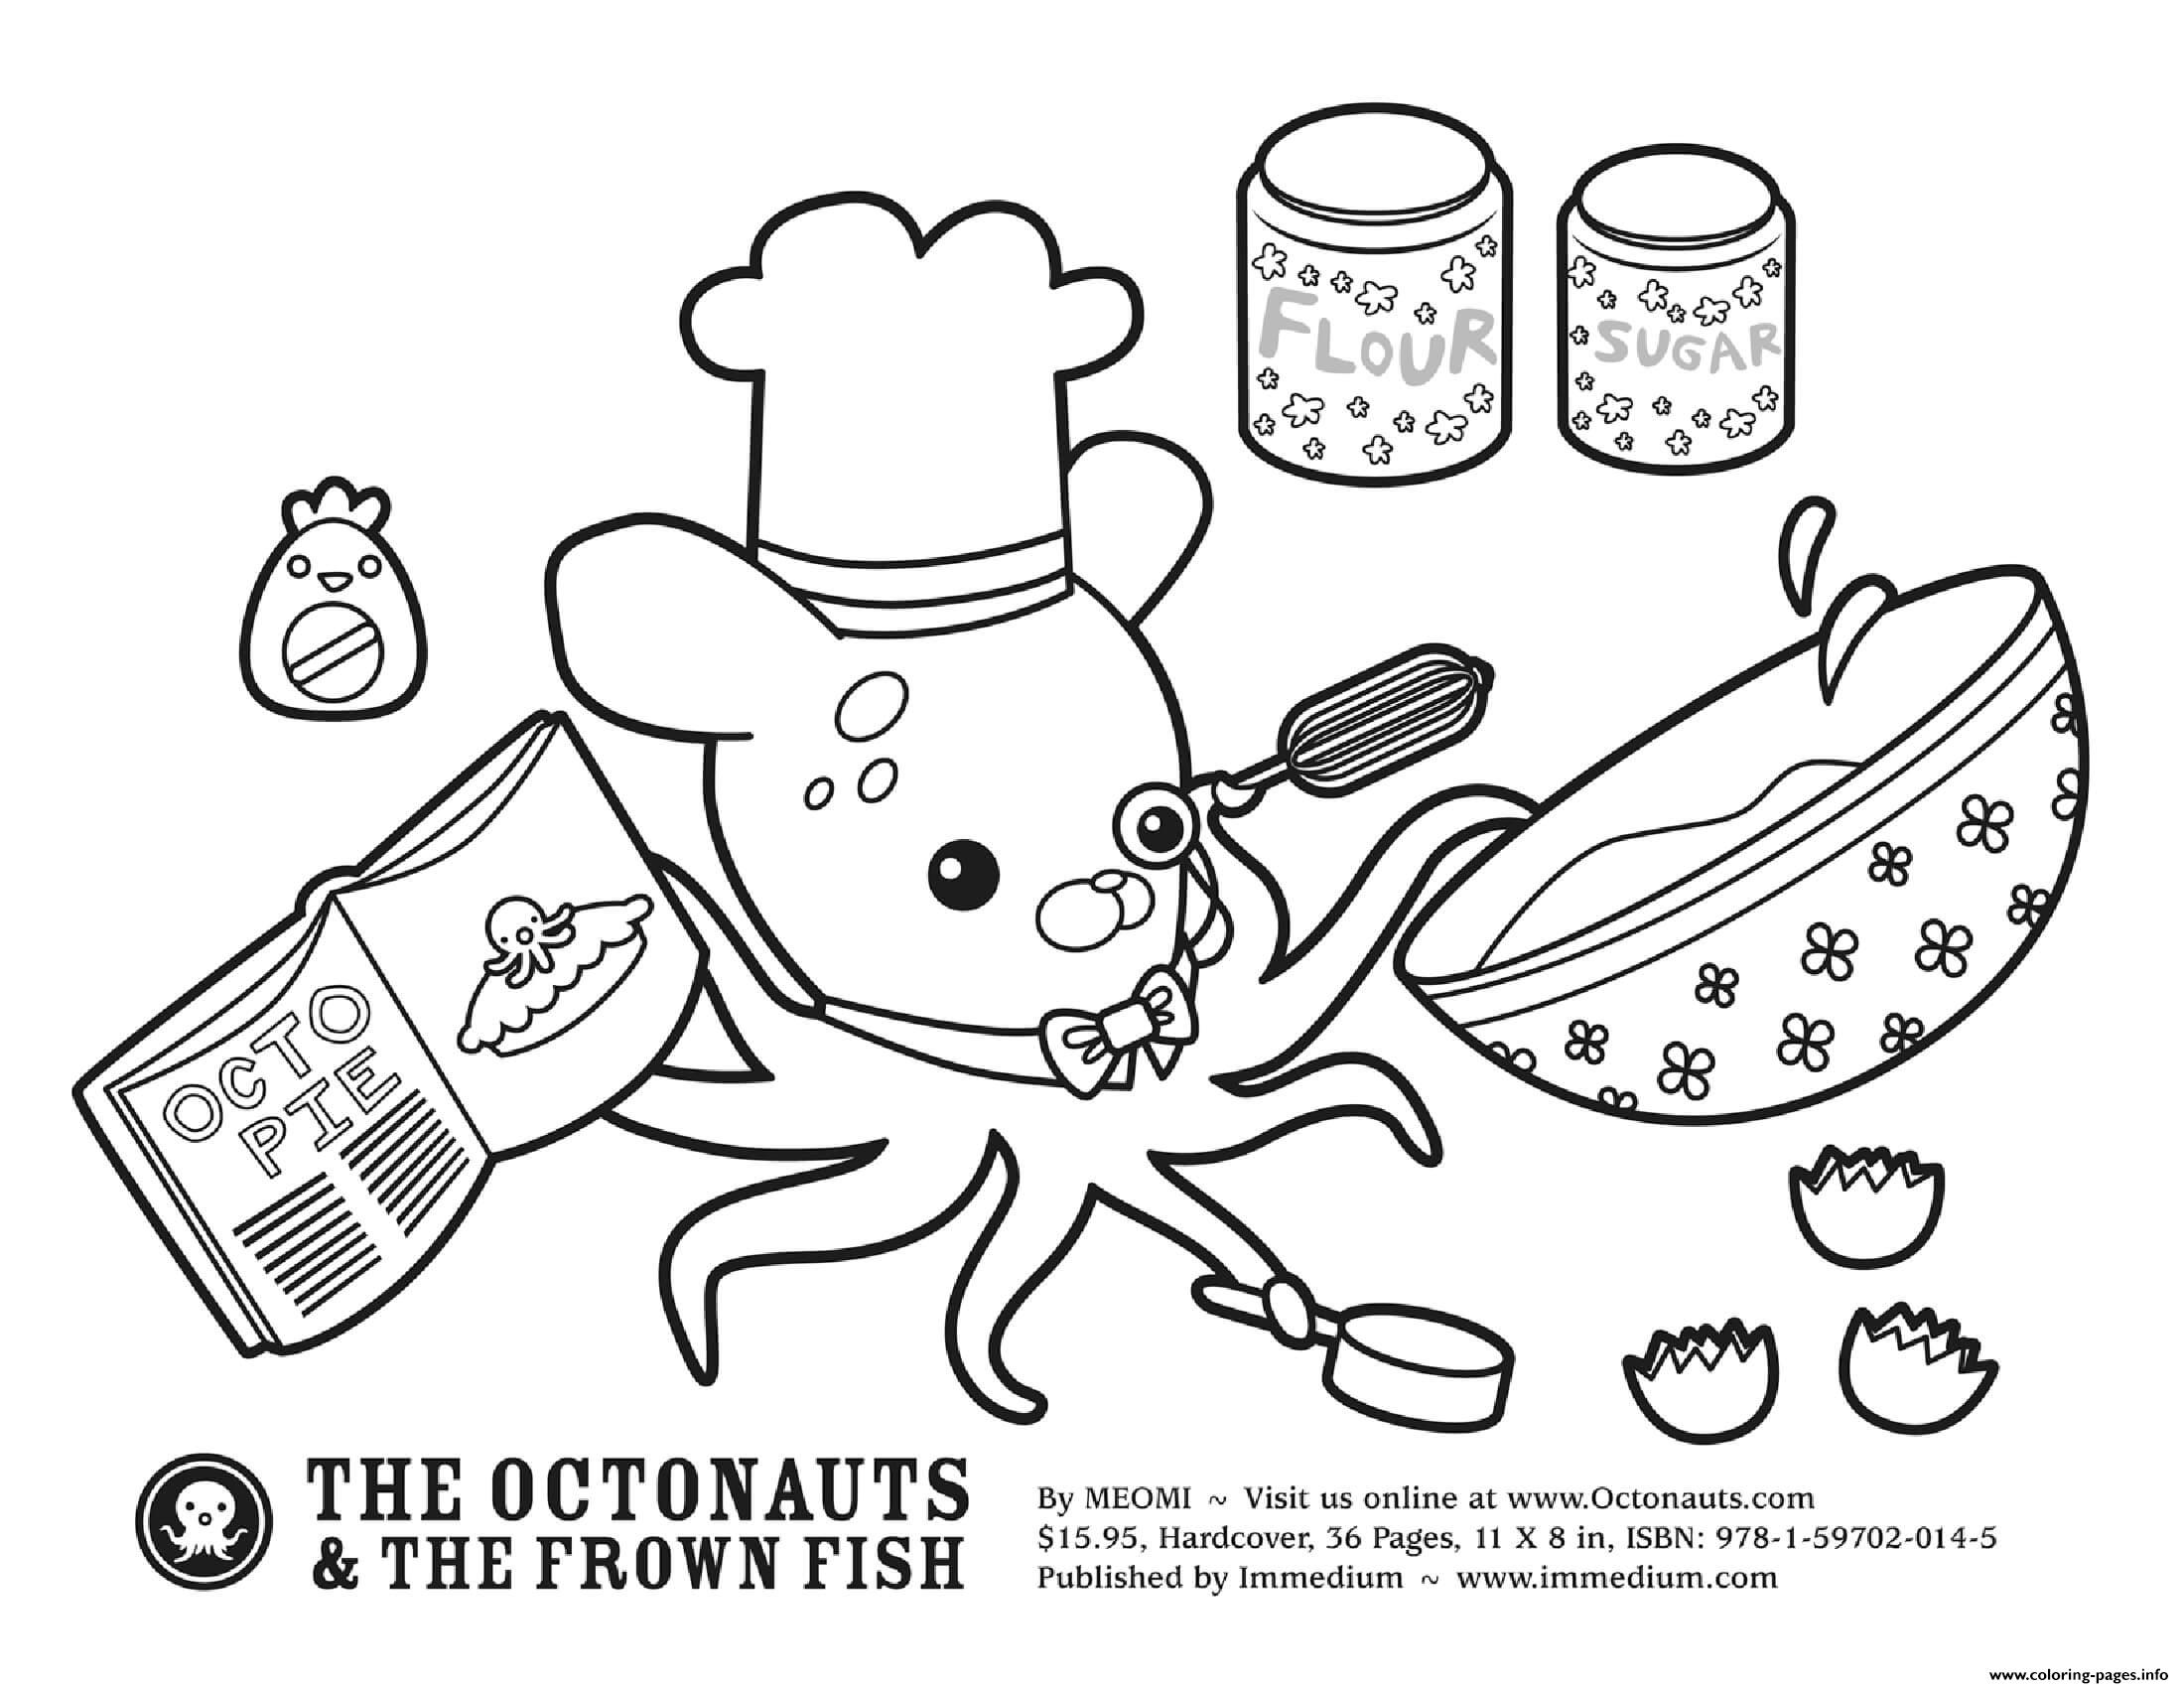 baking with professor inkling octonauts coloring printable octonaut 1617051147baking coloring pages Octonaut Coloring Page